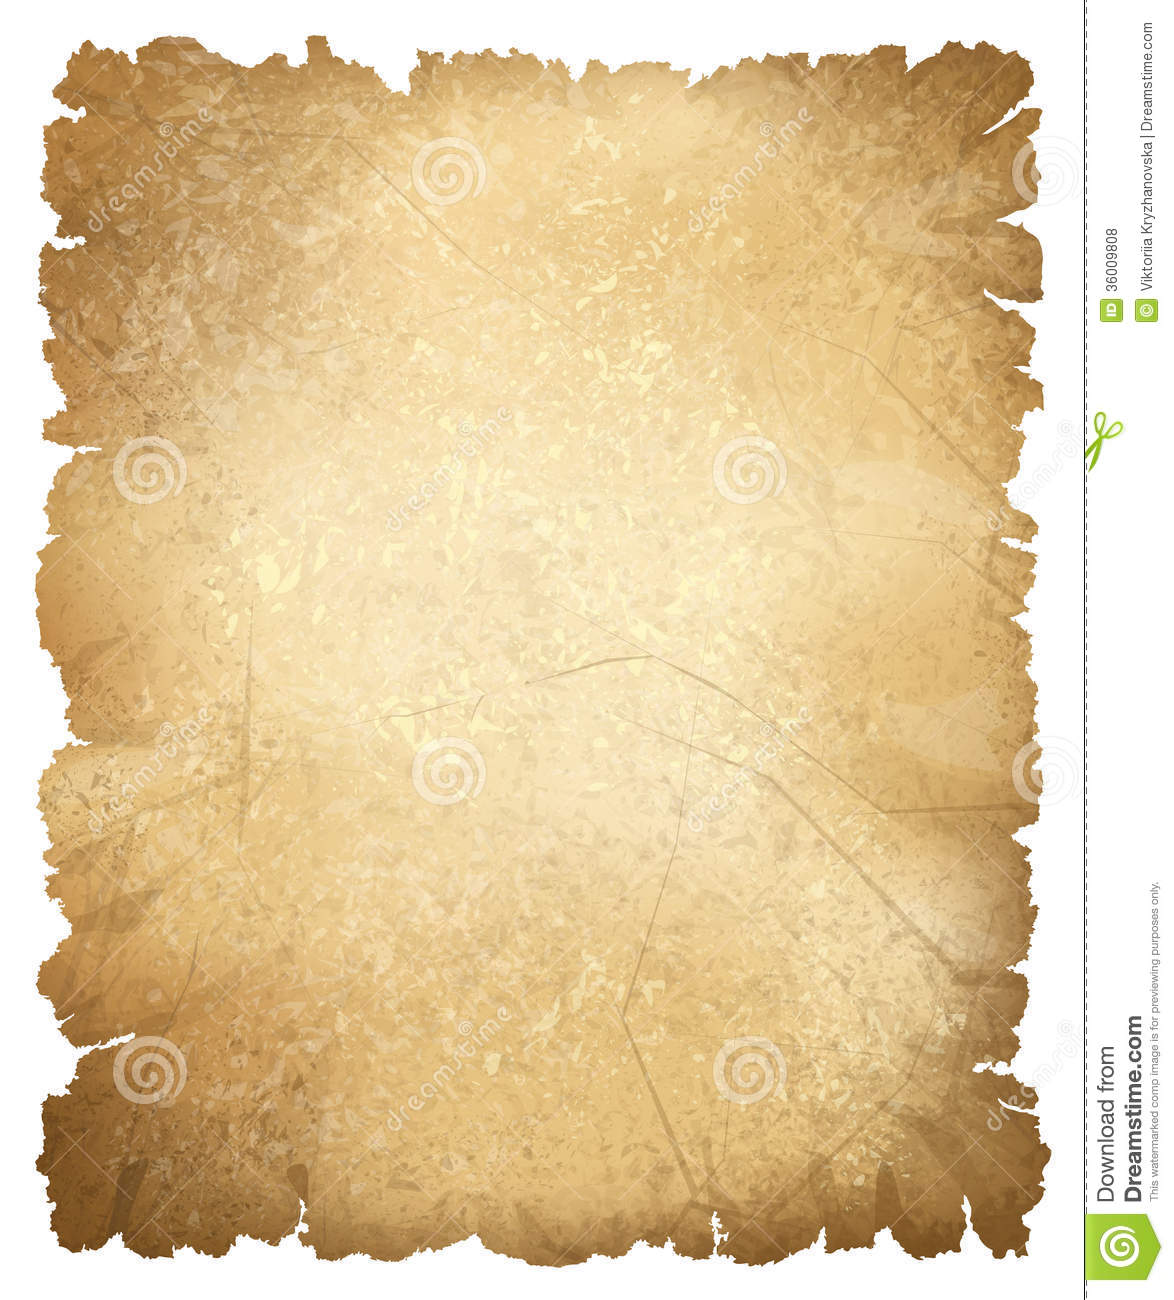 Vector Old Paper Texture. Royalty Free Stock Photos.